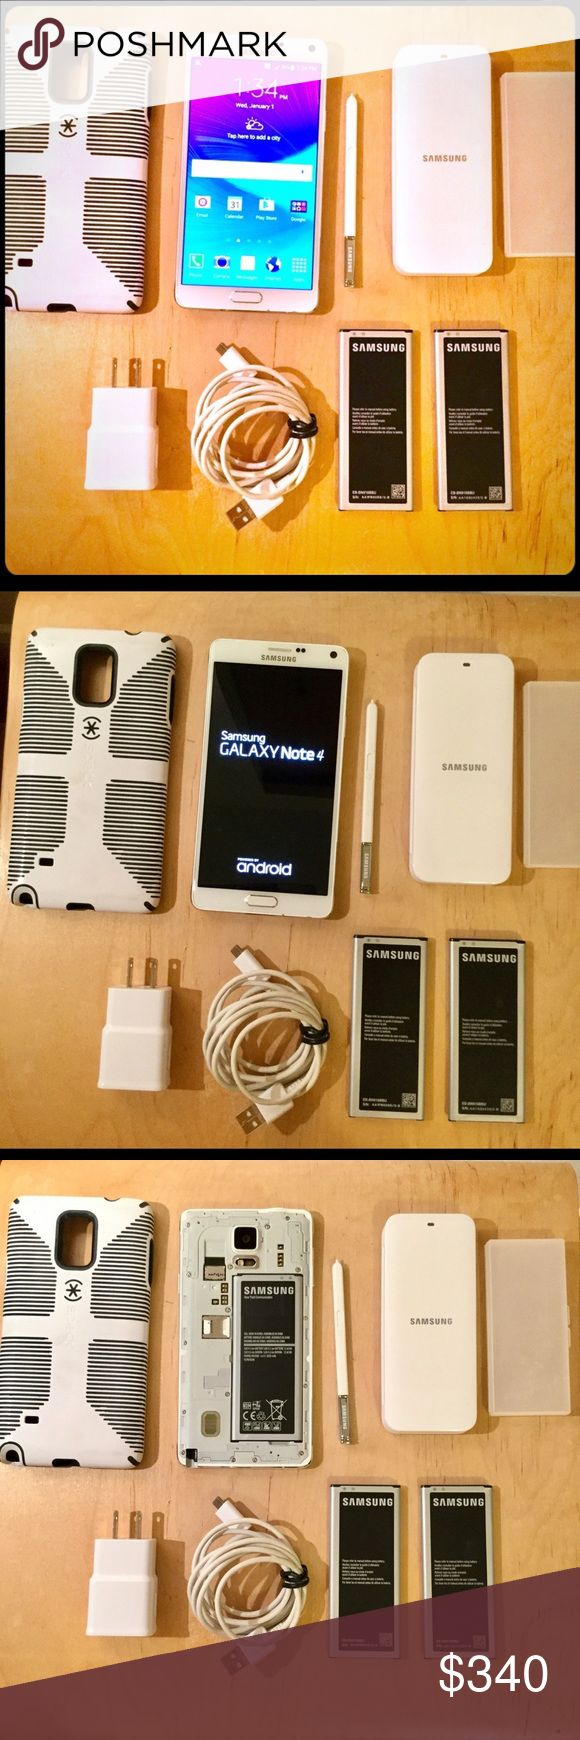 SAMSUNG GALAXY NOTE 4 WITH CASE Bundle includes 1 Speck hard cae, 2 extra batteries,1 mobile battery charger, 1 battery case& 1 usb cable. Stores in case since day one. Excellent condition with 2 tiny chips near bottom which doesn't affect the phone or screen. Chips not visible when in case. Stylus pen works perfect. 32GB. No microSD card. W/ 2 extra battery, you dont have to worry about finding an electricity outlet when you travel. Camera takes amazing photos especially more in the dark…